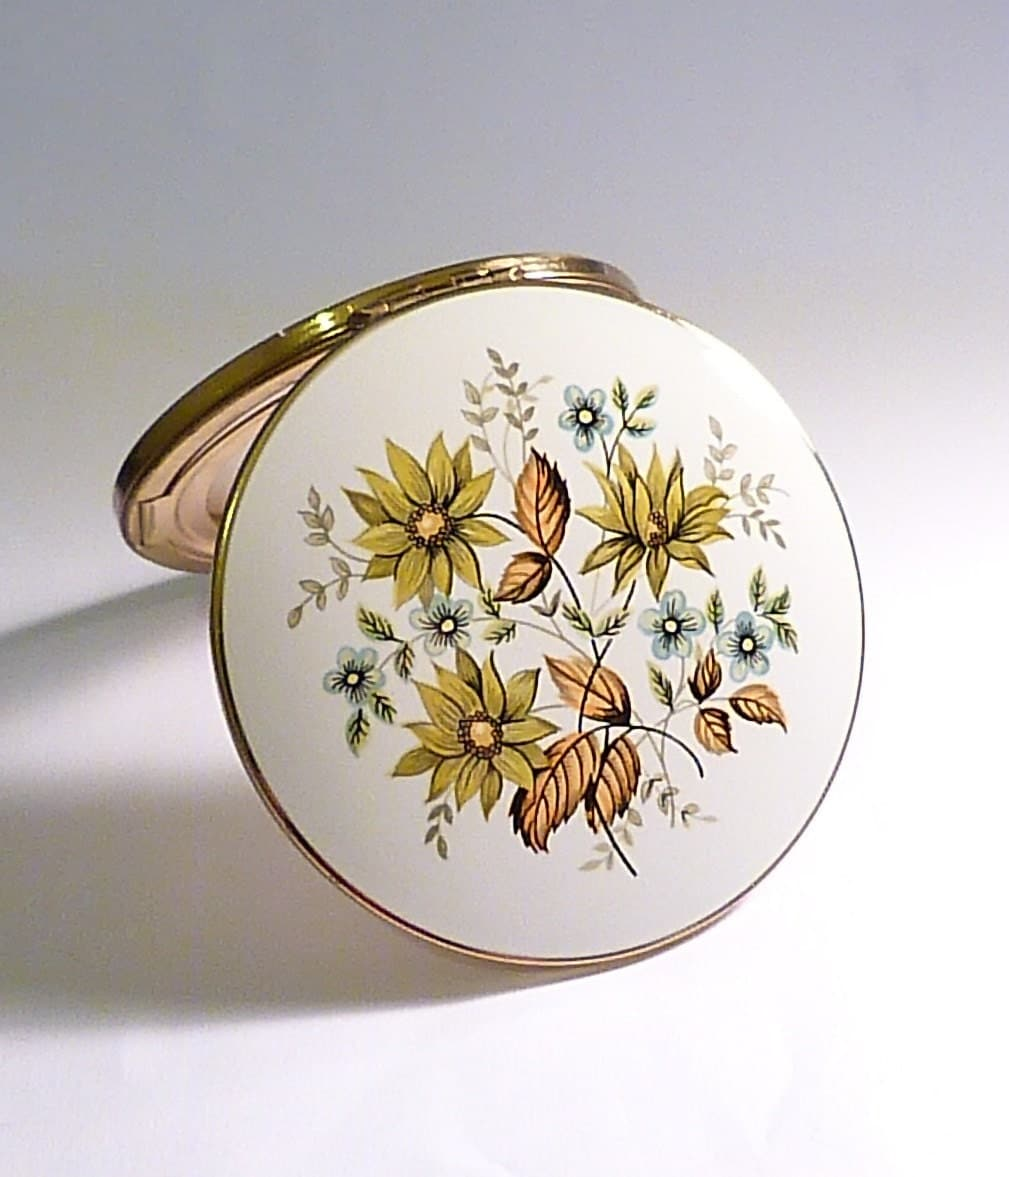 Vintage Stratton compacts enamel floral powdr compacts vintage bridesmaids gifts retro gifts for her